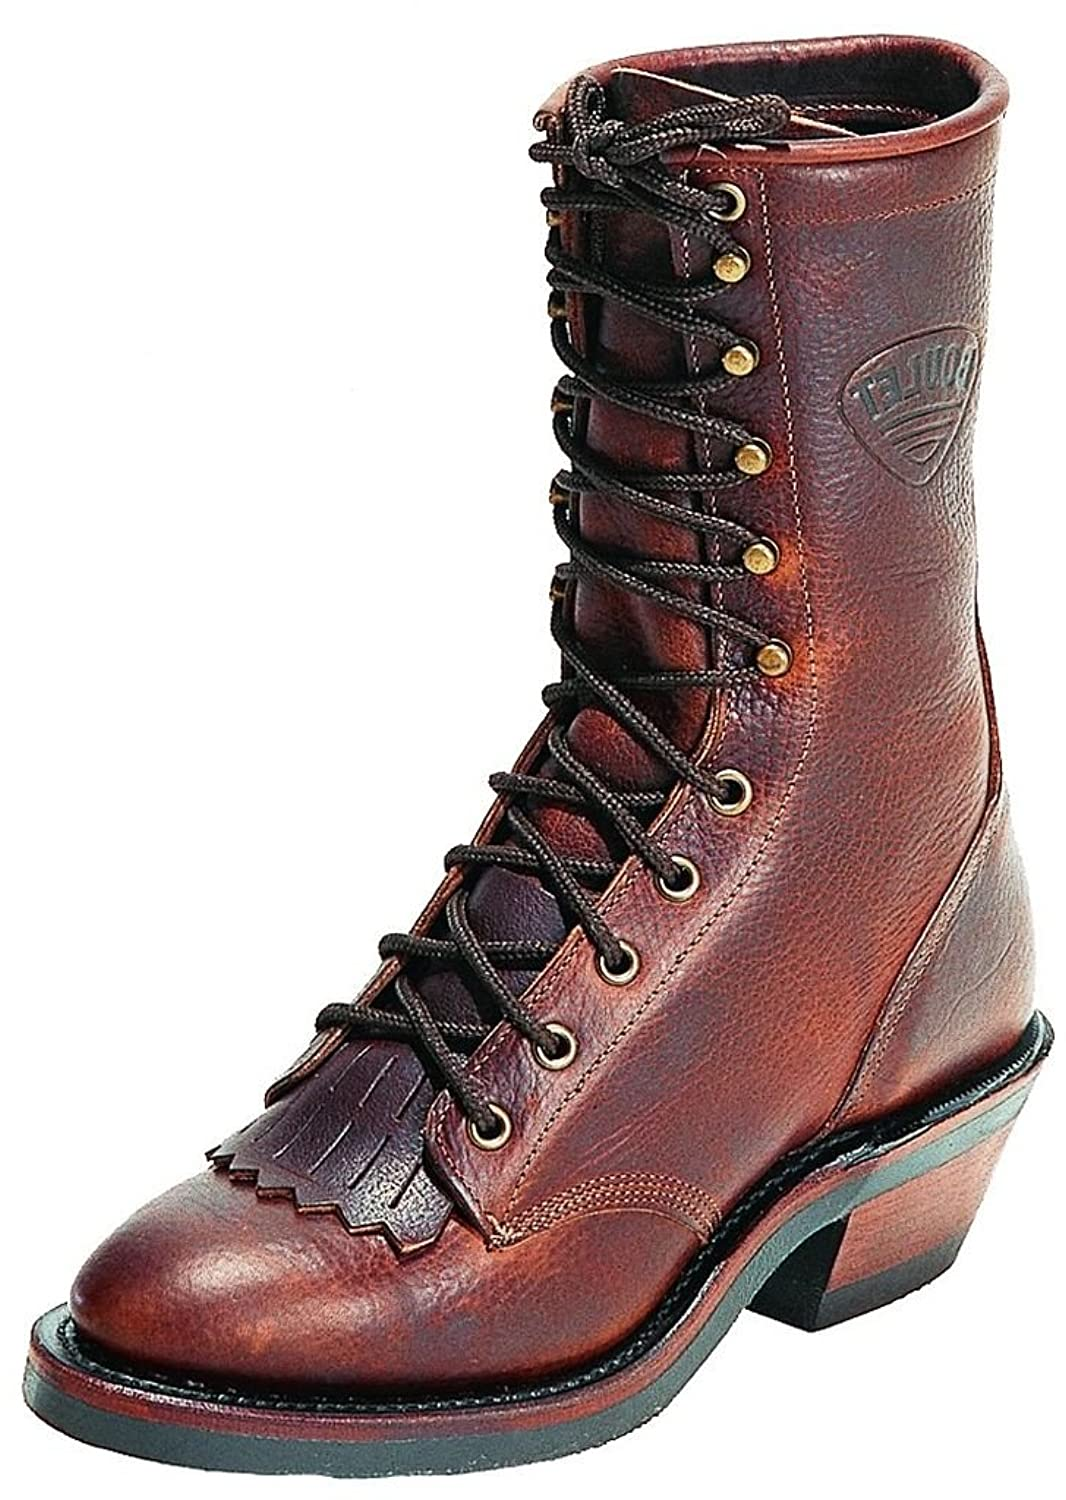 """Boulet Men's Packer Grizzly Mountain 9"""" Lace Up Boot Round Toe - 8099"""